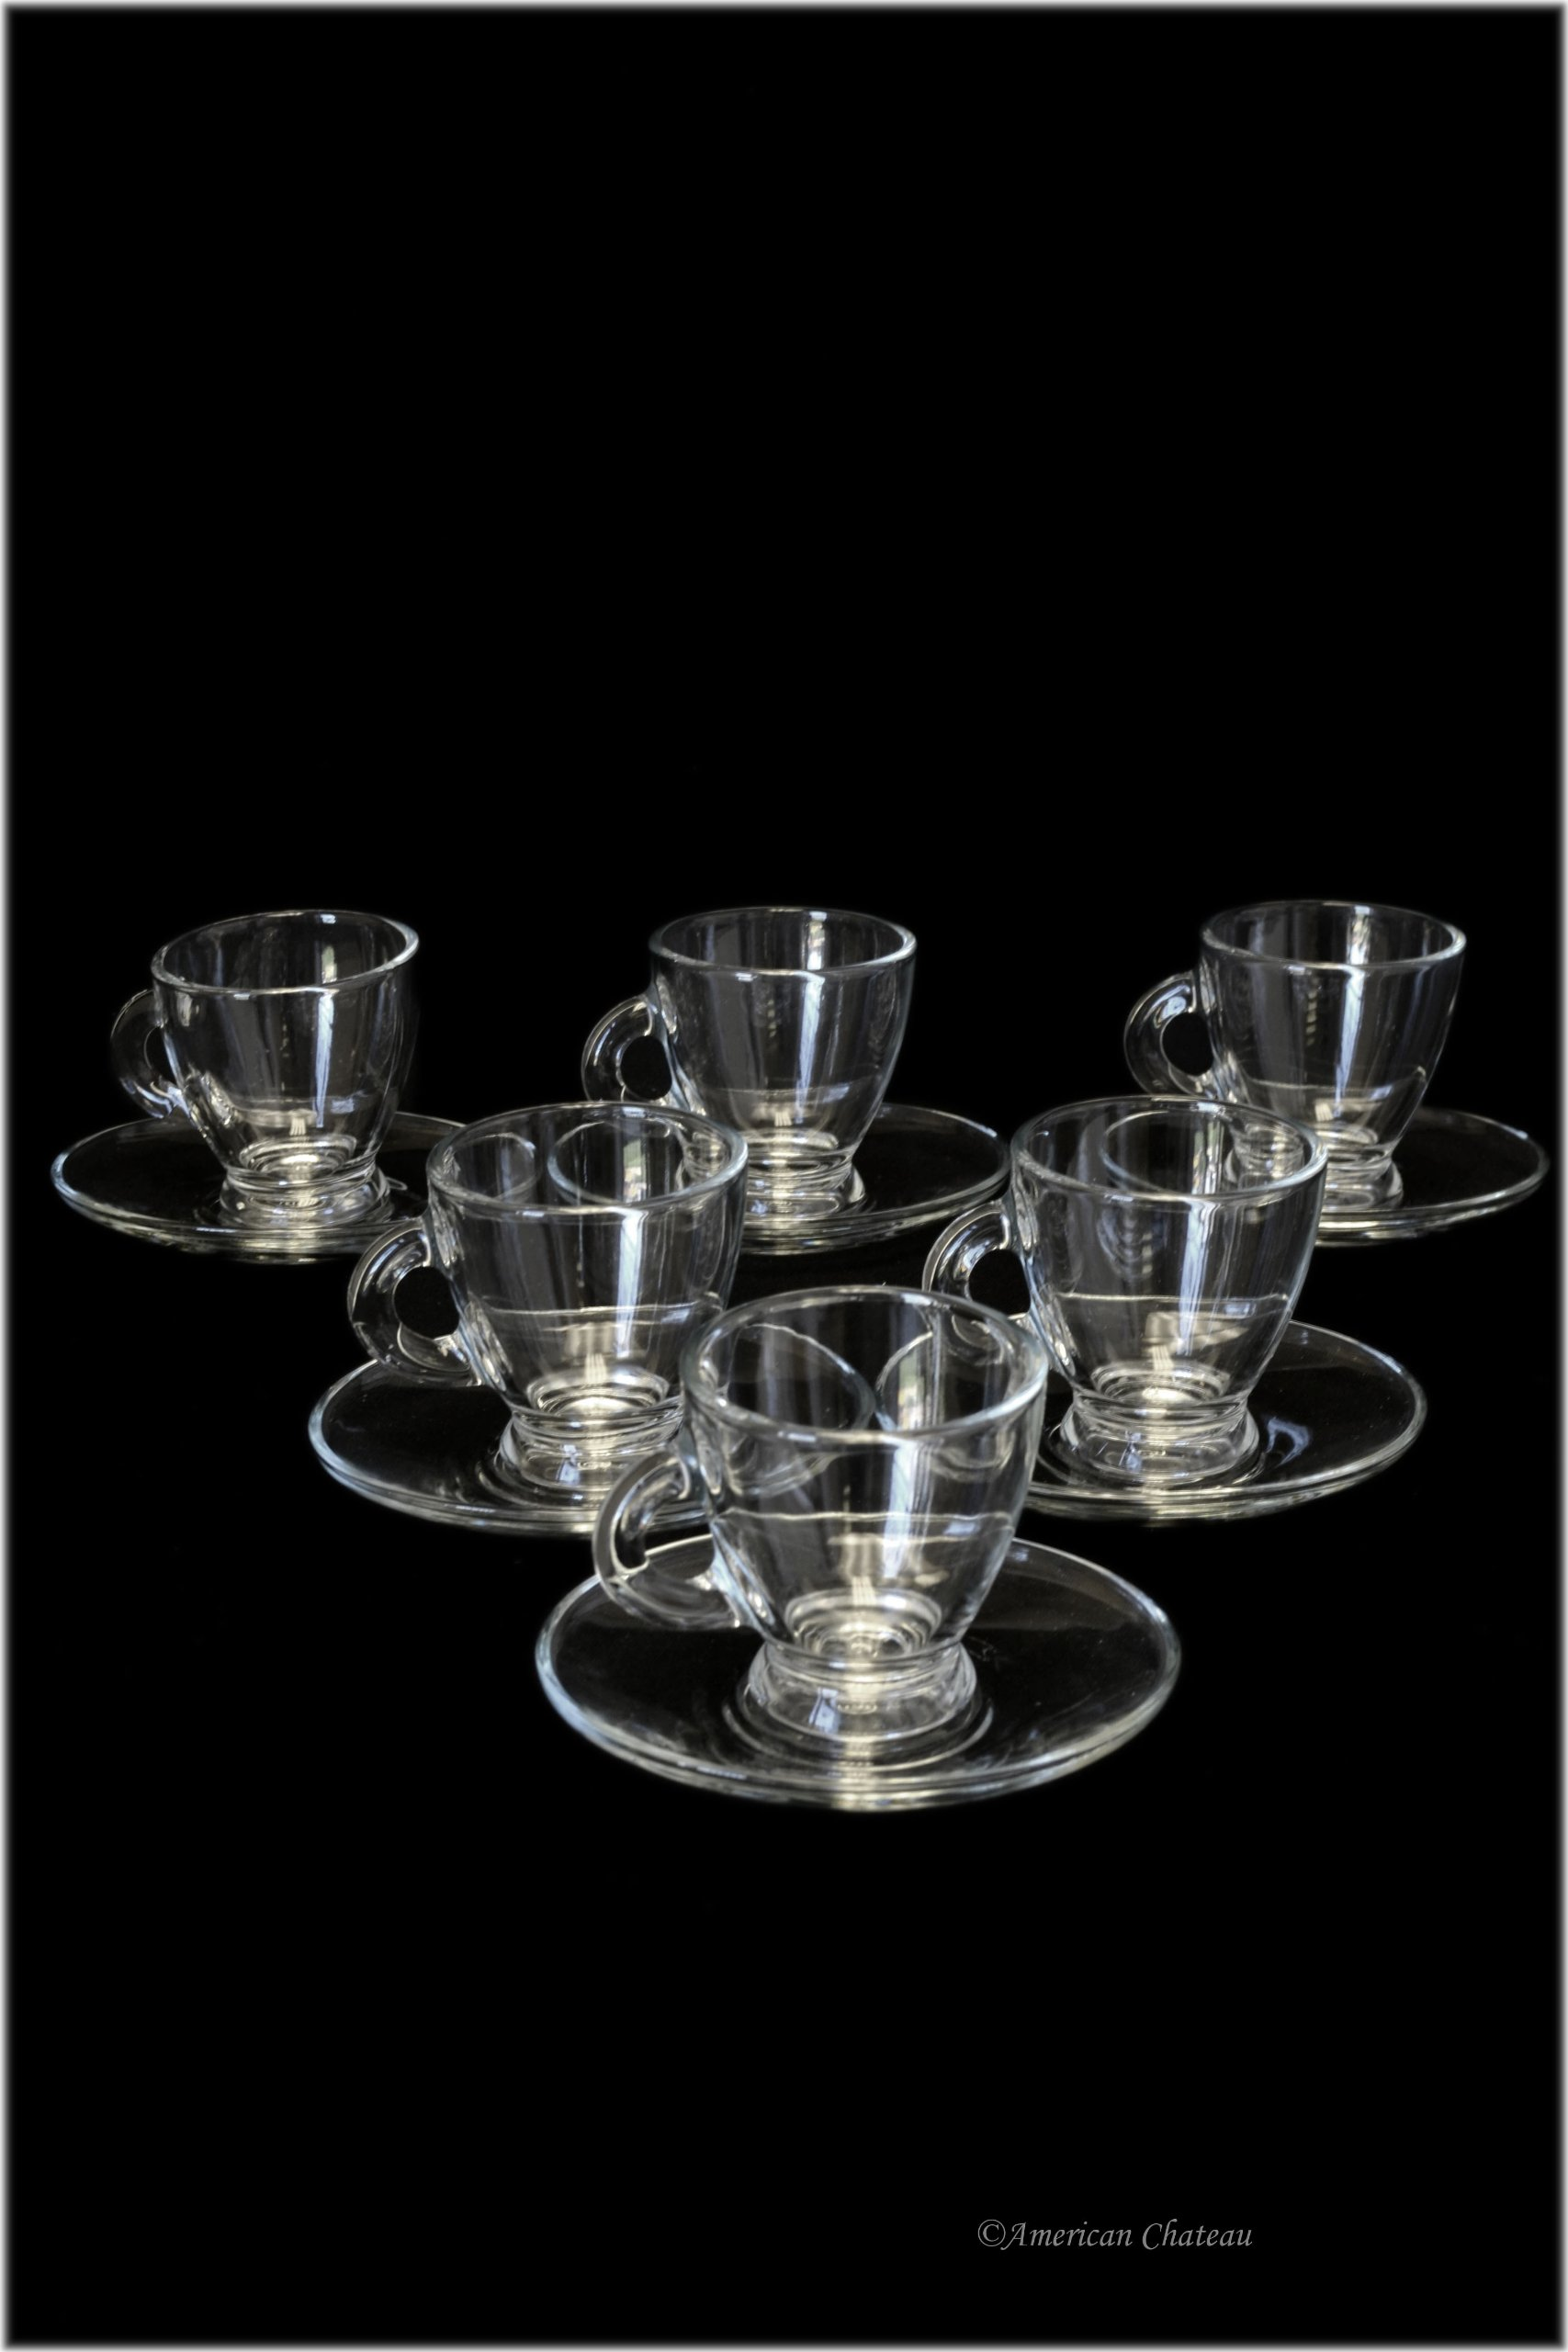 Set of 6 Glass 2.5oz Demitasse Espresso Cups Glasses with Saucers